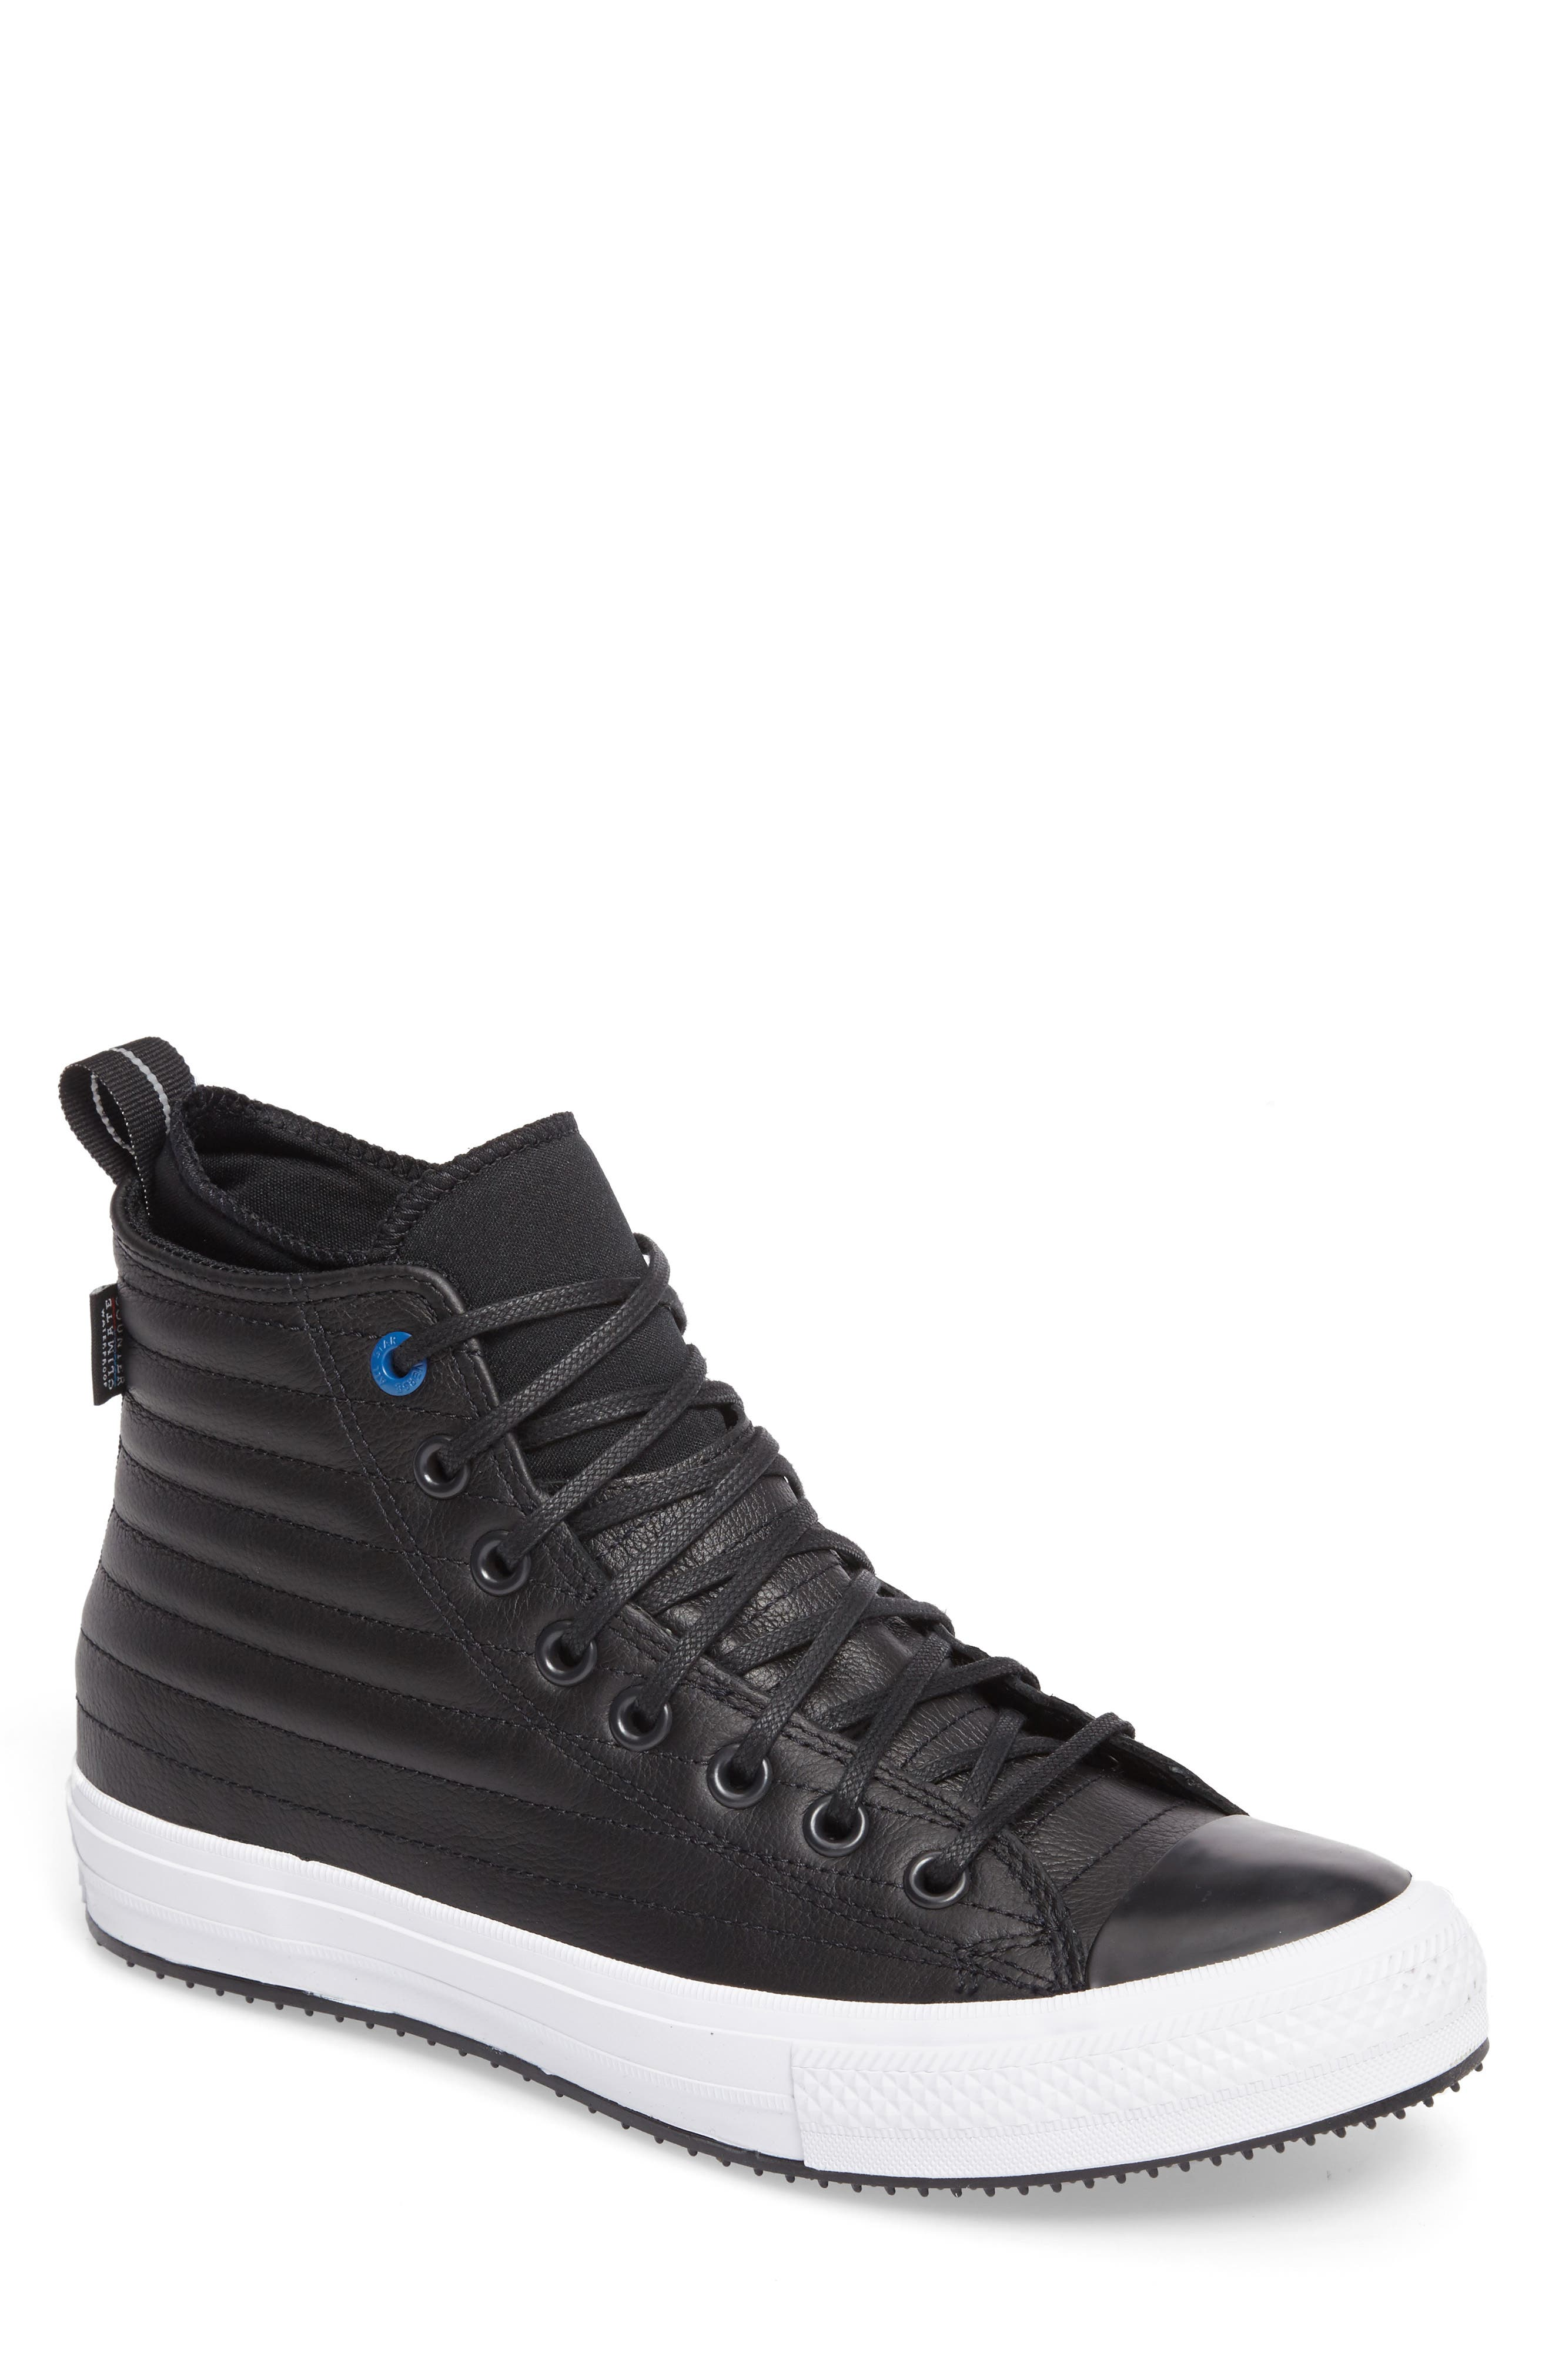 Chuck Taylor<sup>®</sup> All Star<sup>®</sup> Waterproof Quilted Sneaker,                         Main,                         color, 001